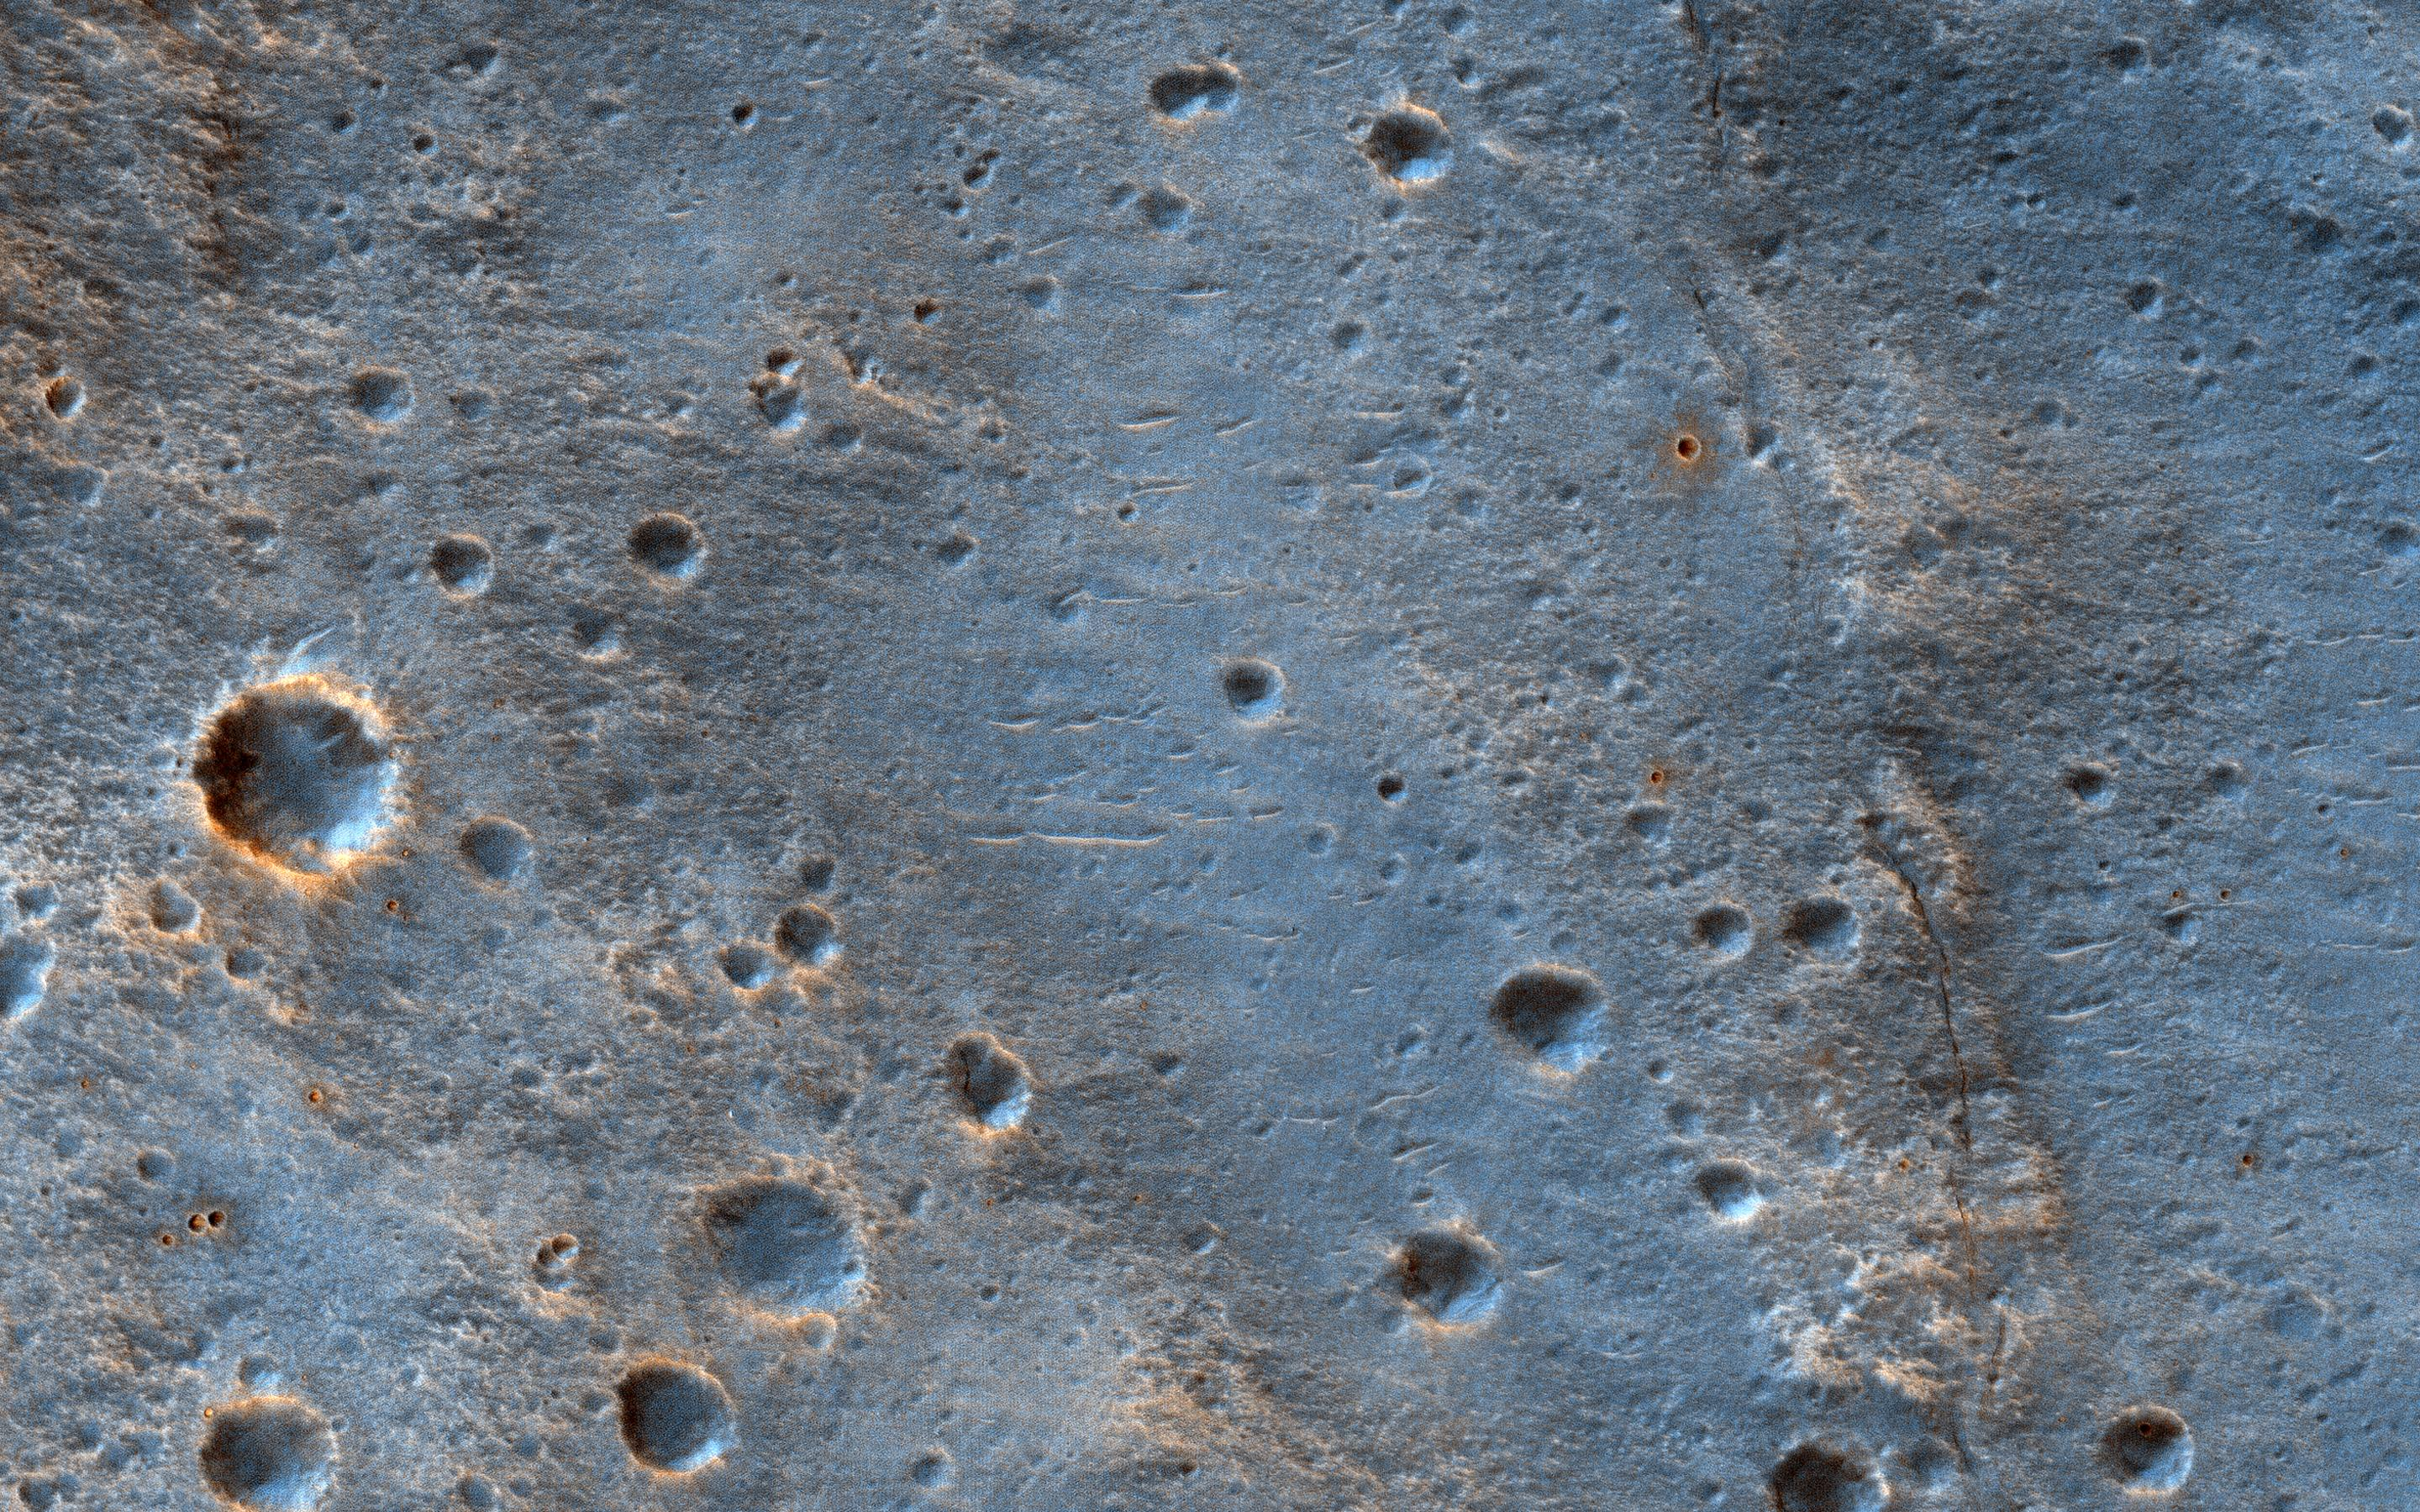 This image, acquired on May 16, 2019 by NASAs Mars Reconnaissance Orbiter, shows a cratered area to the southeast of the ExoMars 2020 Rosalind Franklin rover landing site at Oxia Palus.